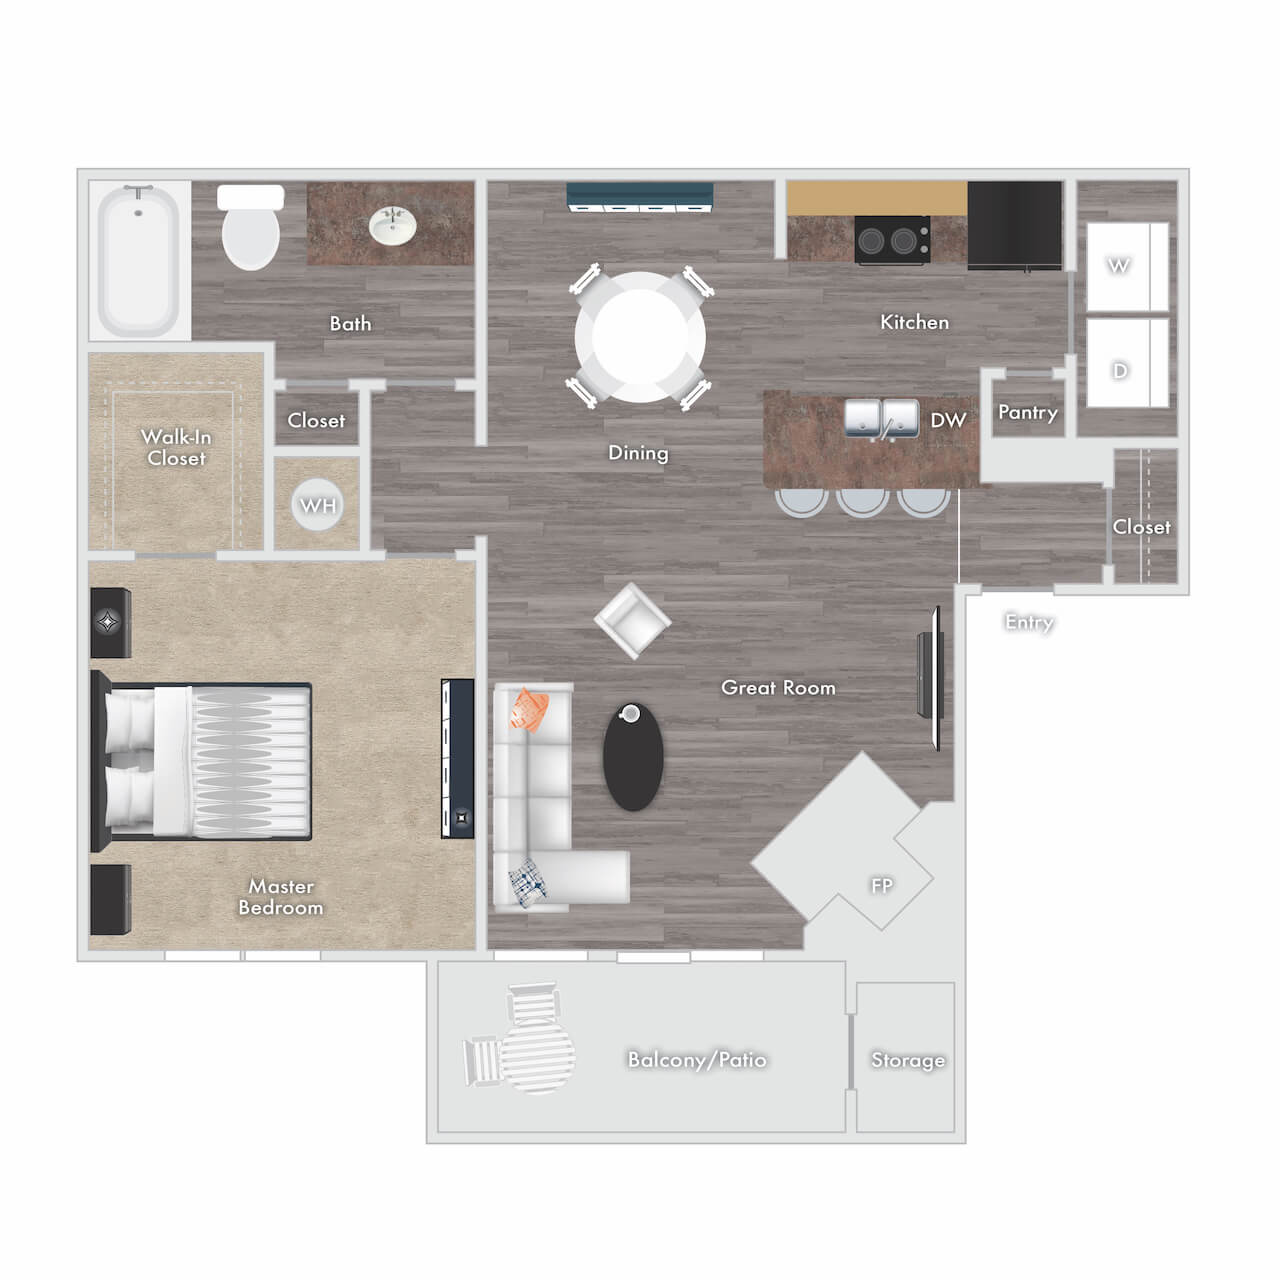 Melville floor plan - 1 bed 1 bath with fireplace, balcony, and storage